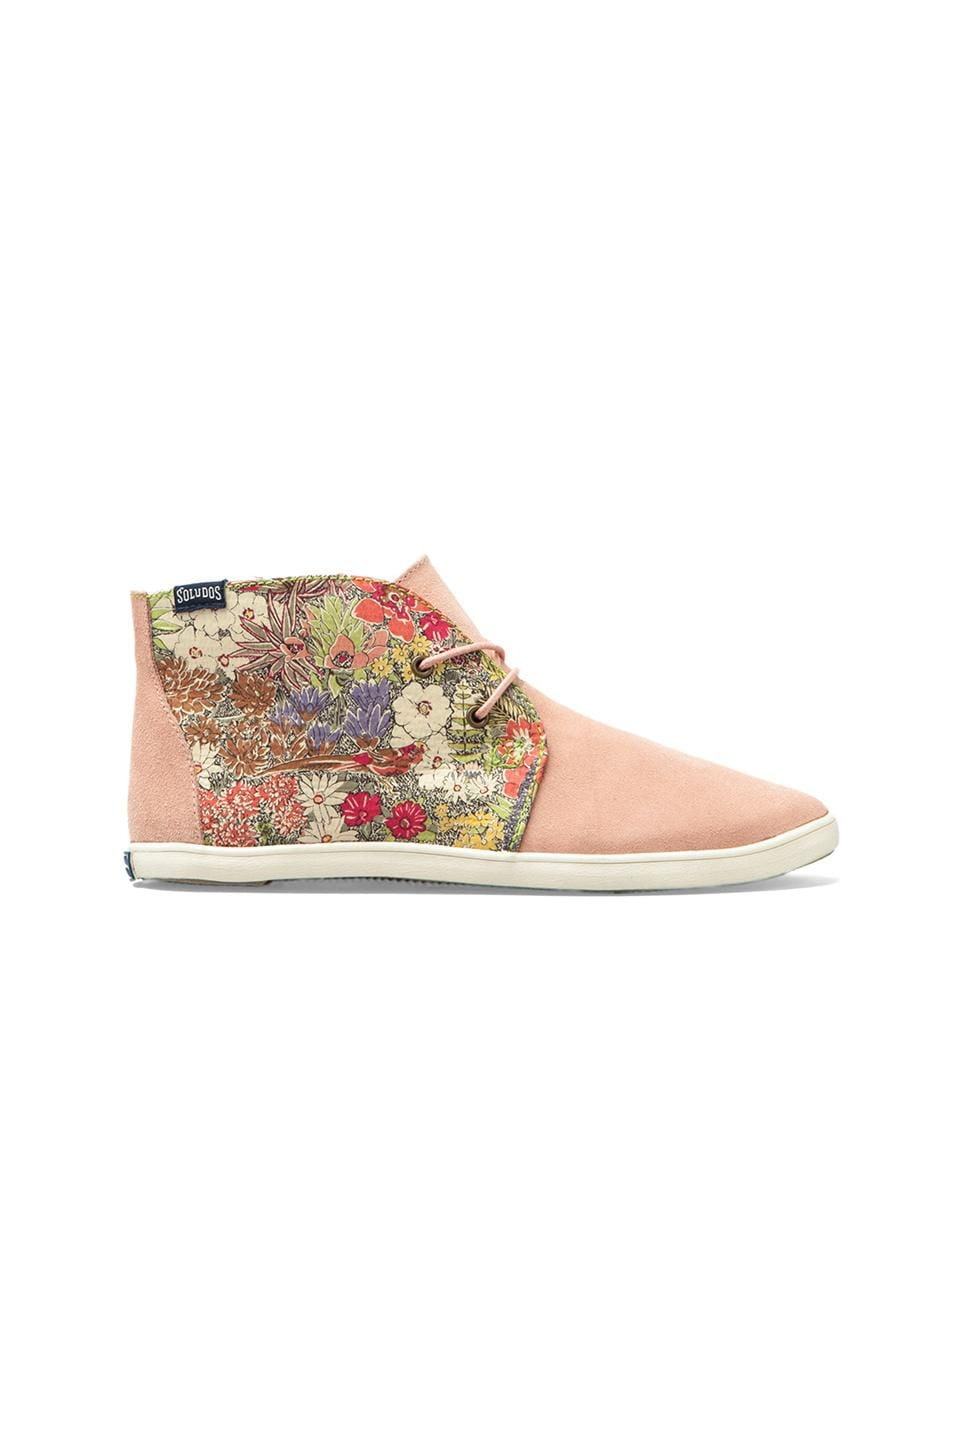 Soludos Floral Derby in Garden Party Green Pink